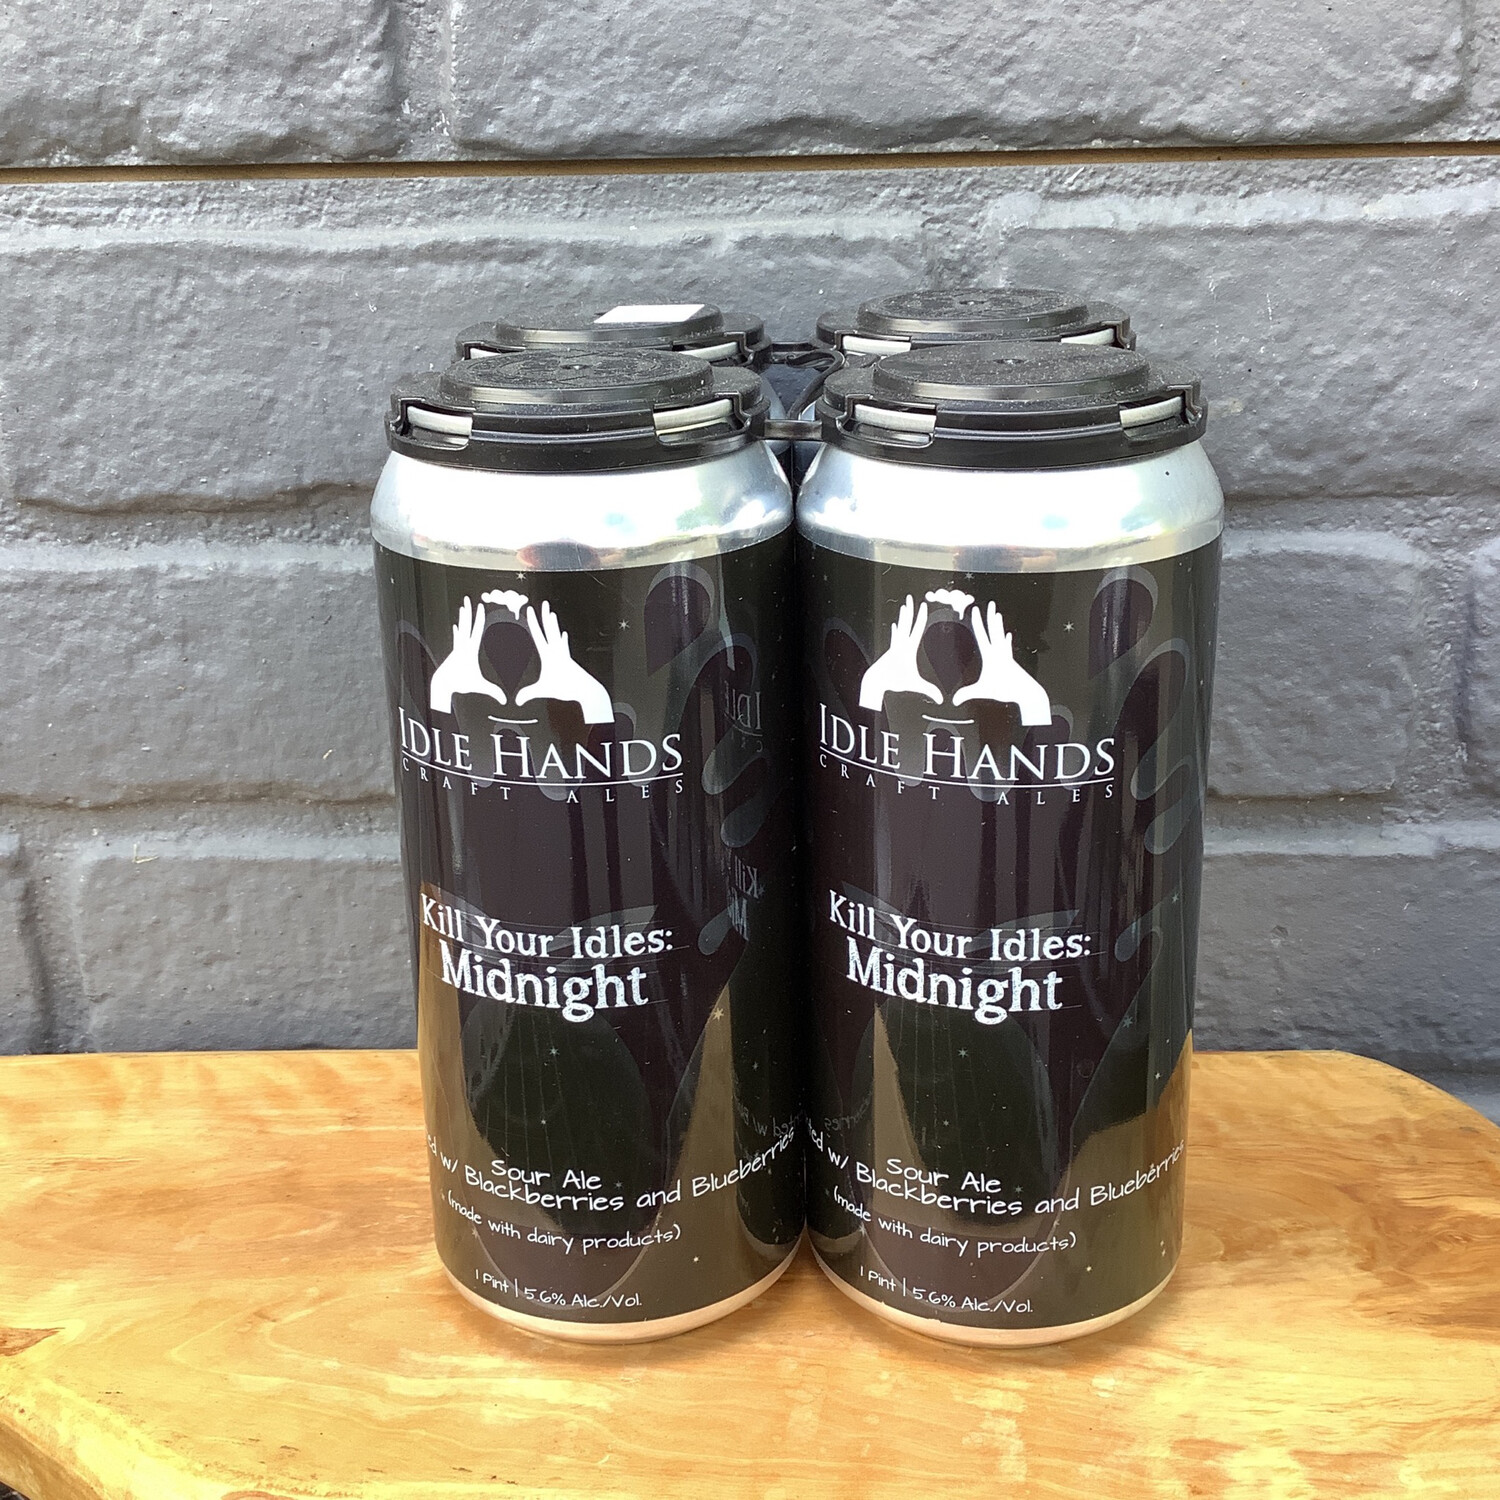 Idle Hands Kill Your Idles Midnight 4pk